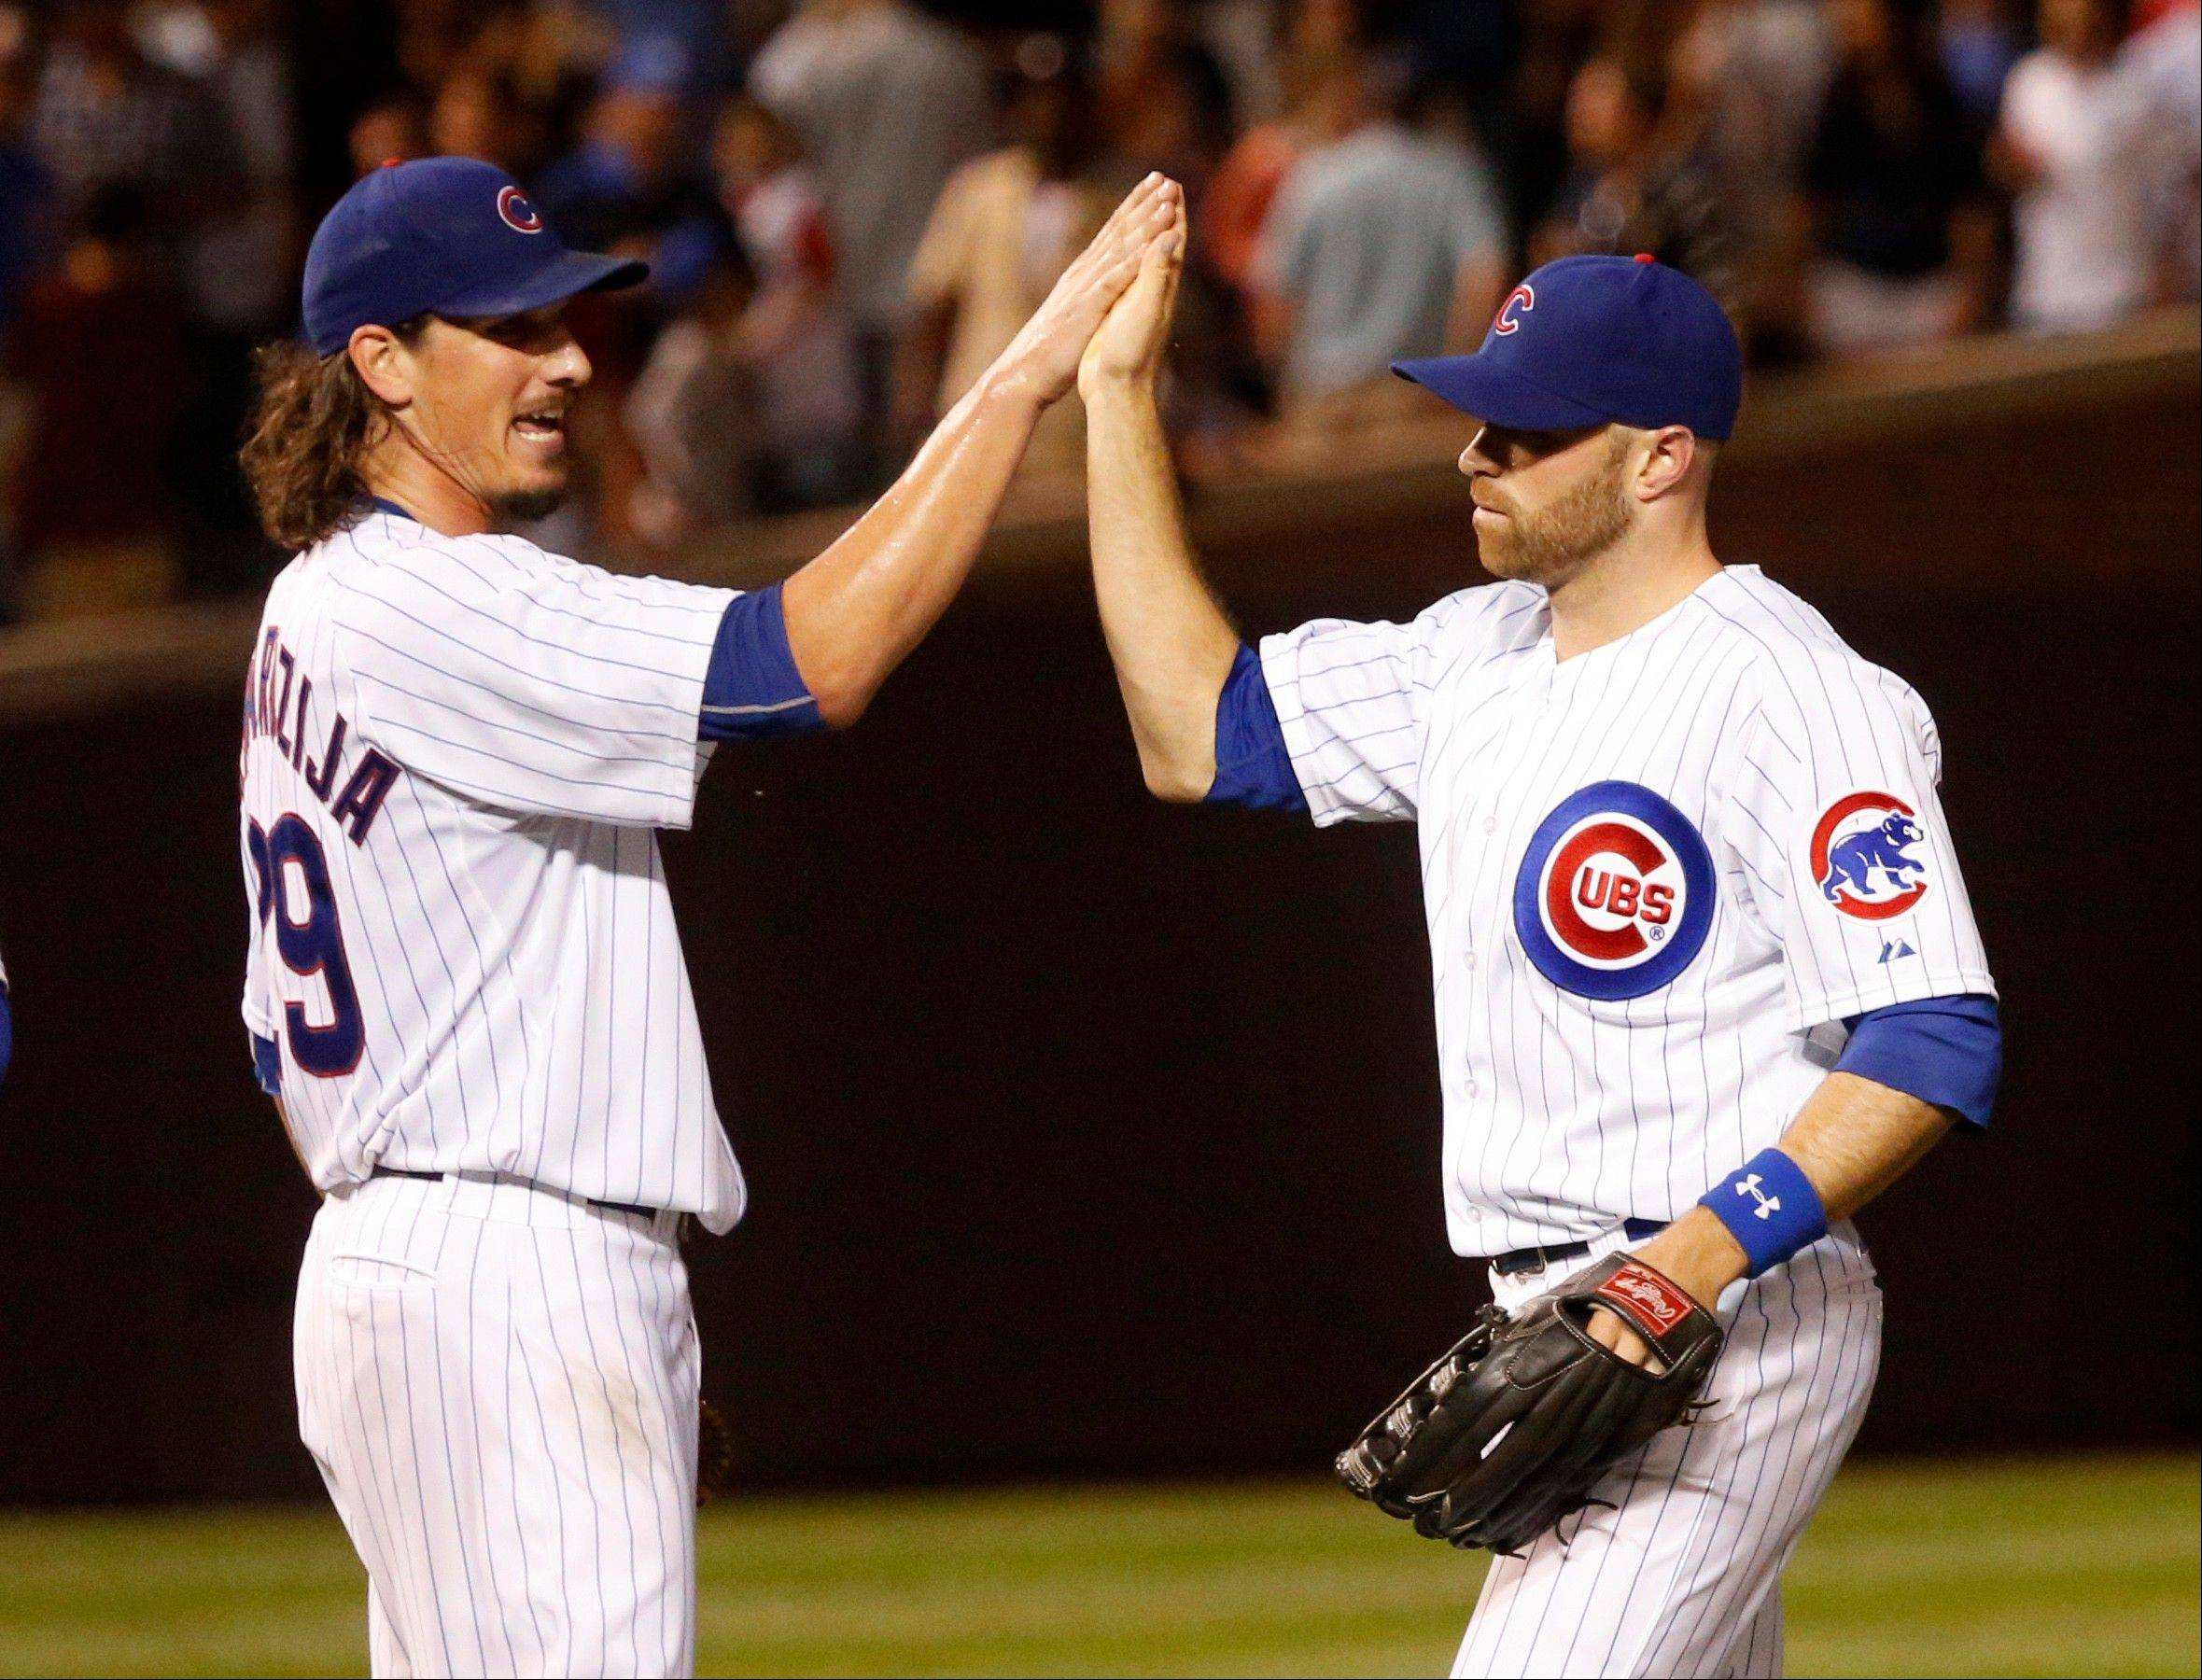 Cubs starting pitcher Jeff Samardzija, left, celebrates with right fielder Nate Schierholtz the Cubs� 11-1 win over the Washington Nationals.